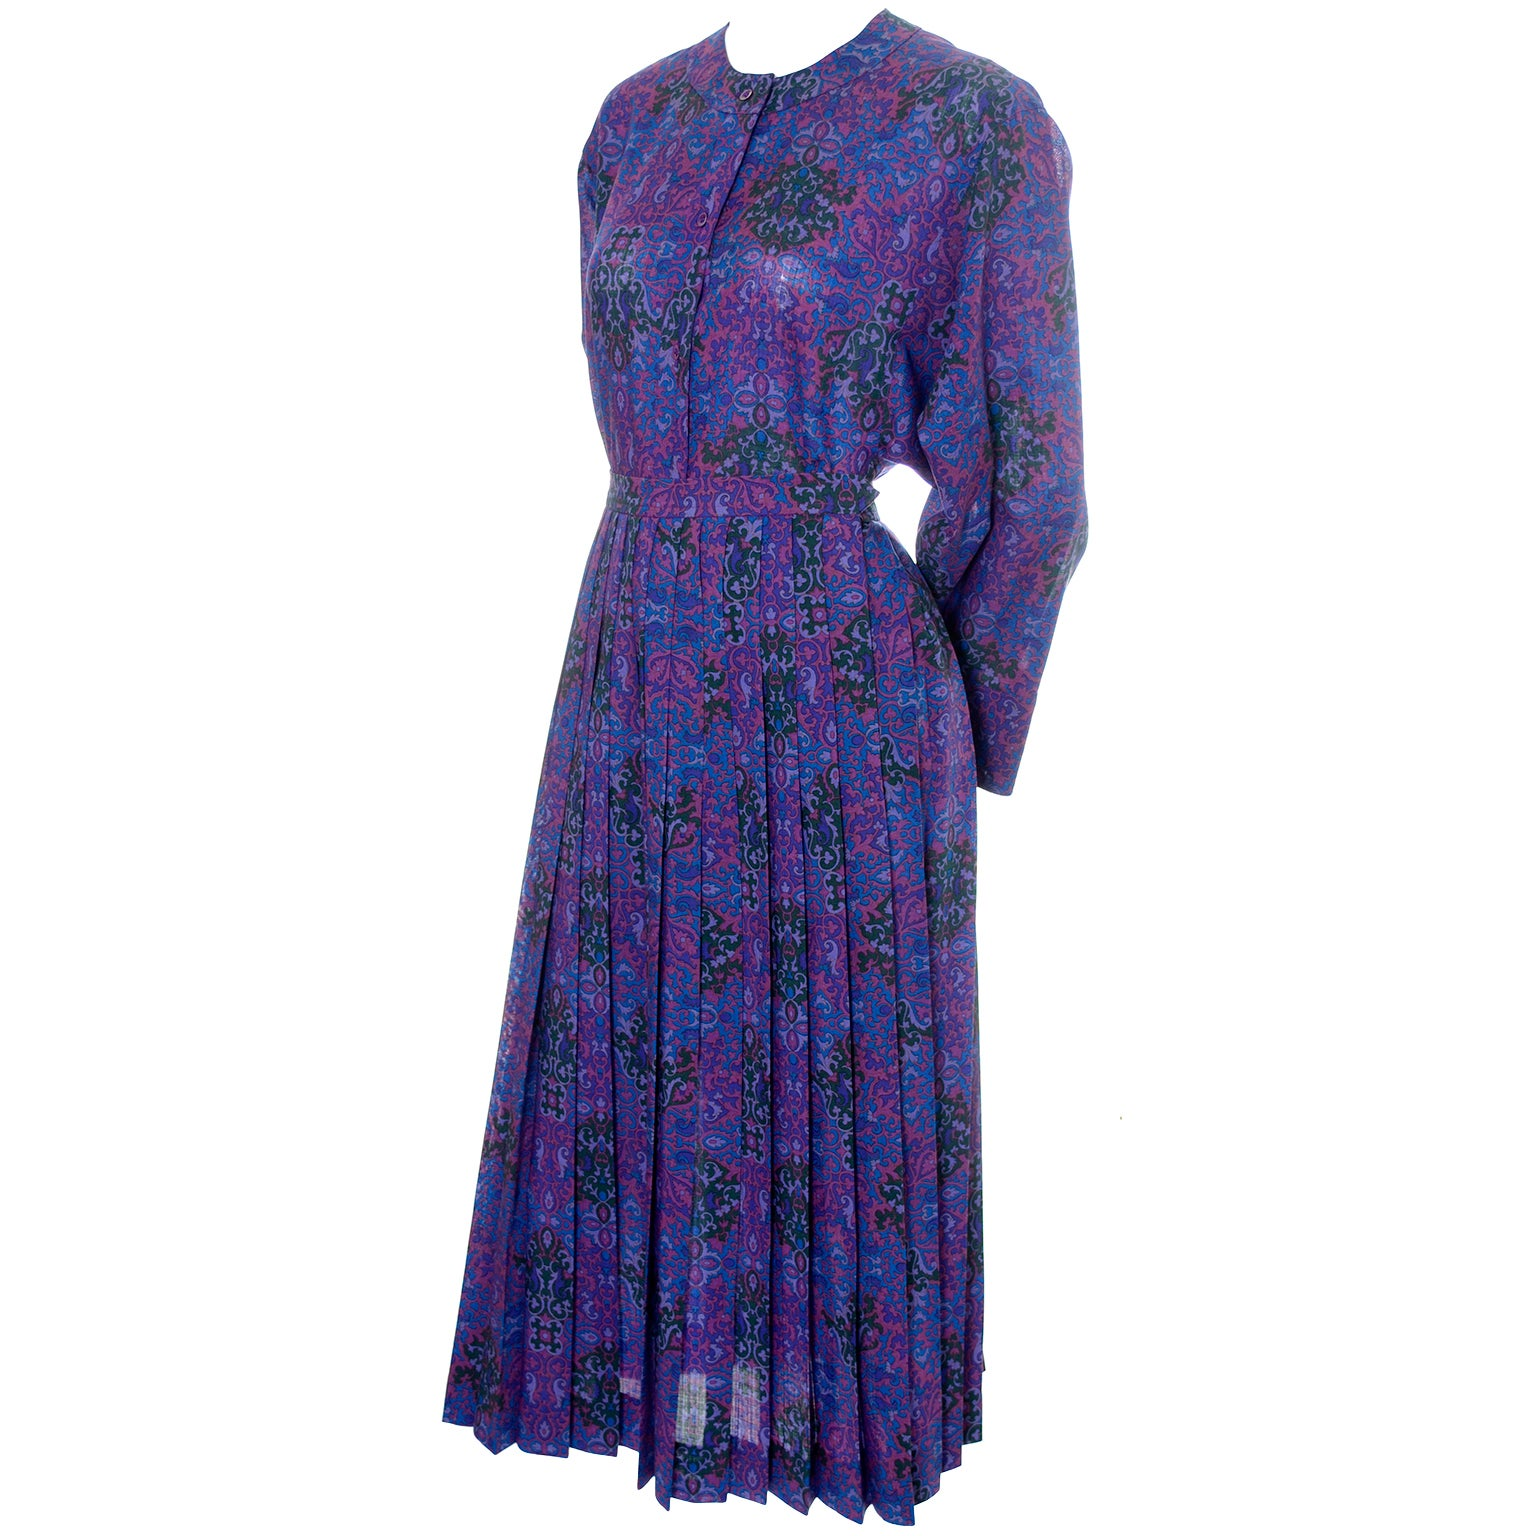 Ysl Yves Saint Laurent 2 Pc Vintage Dress Jewel Tone